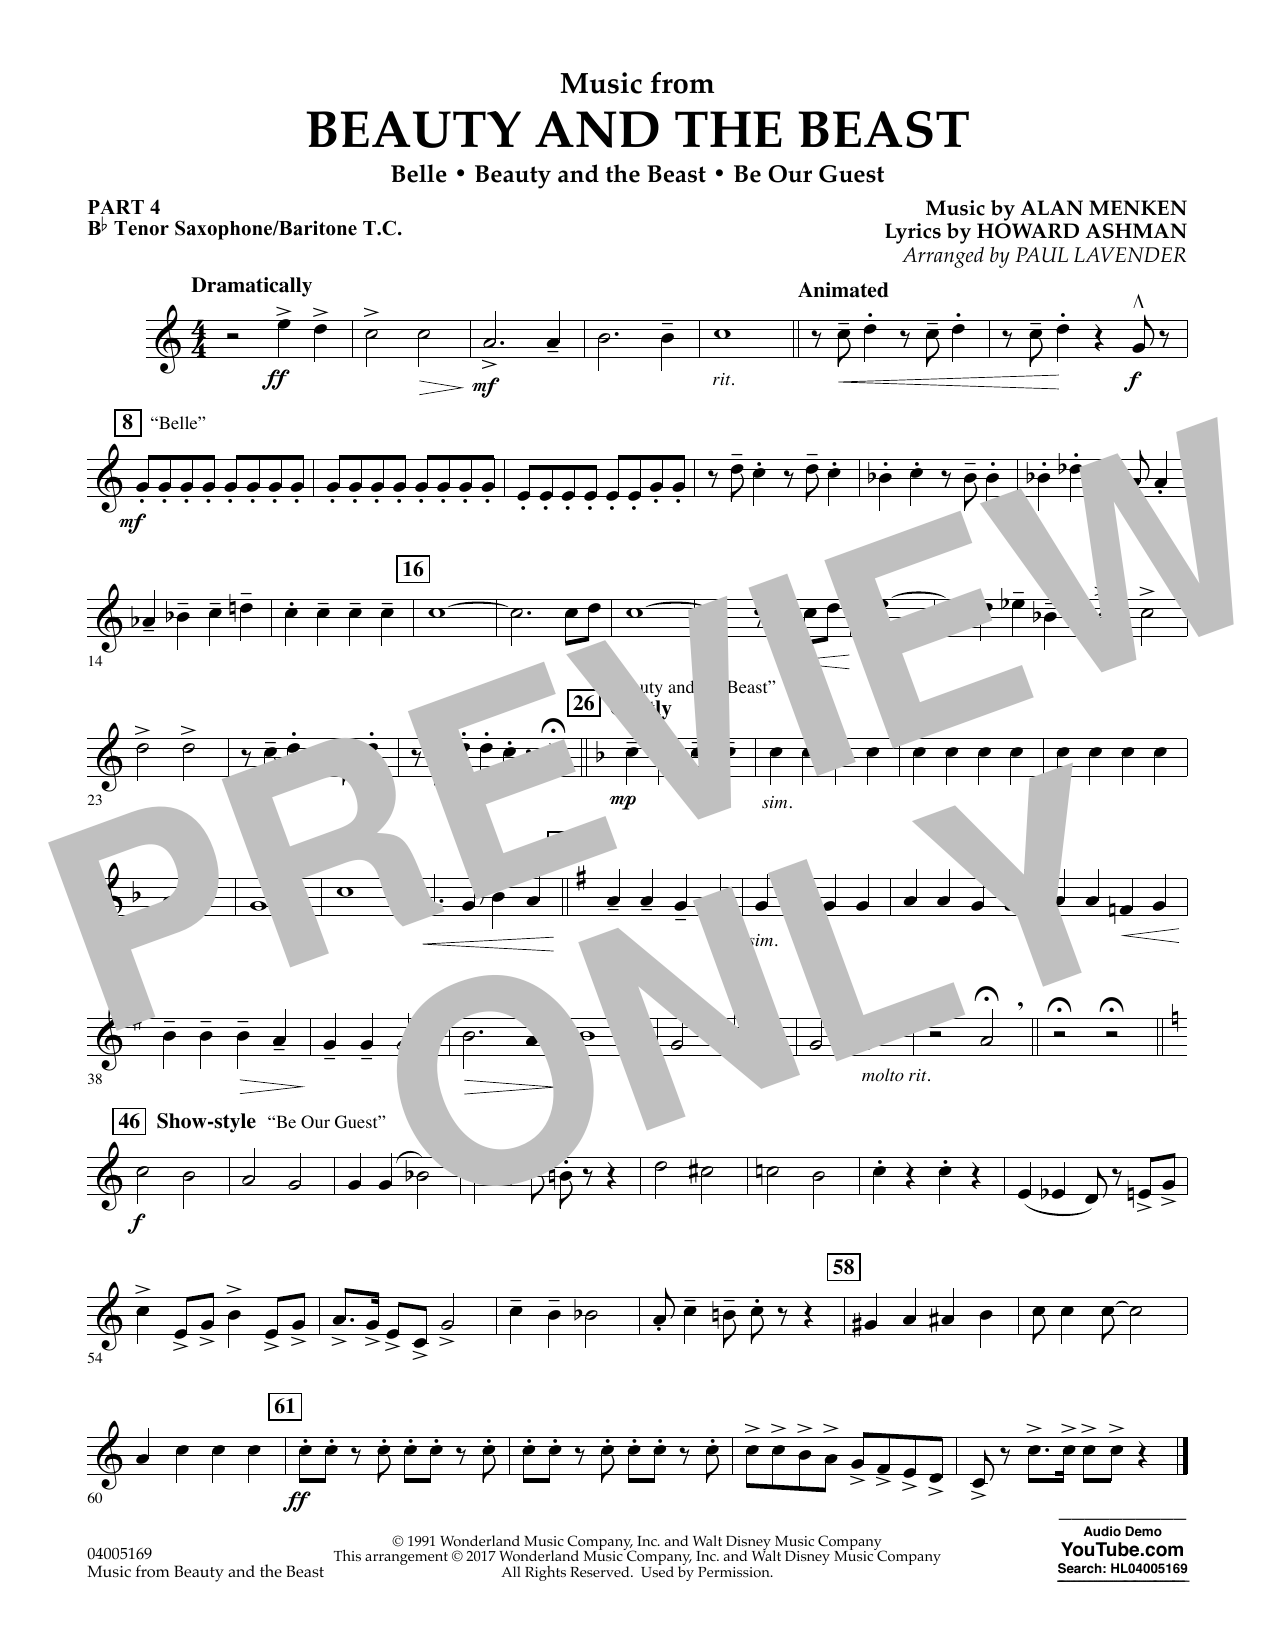 Paul Lavender Music from Beauty and the Beast - Pt.4 - Bb Tenor Sax/Bar. T.C. sheet music notes and chords. Download Printable PDF.